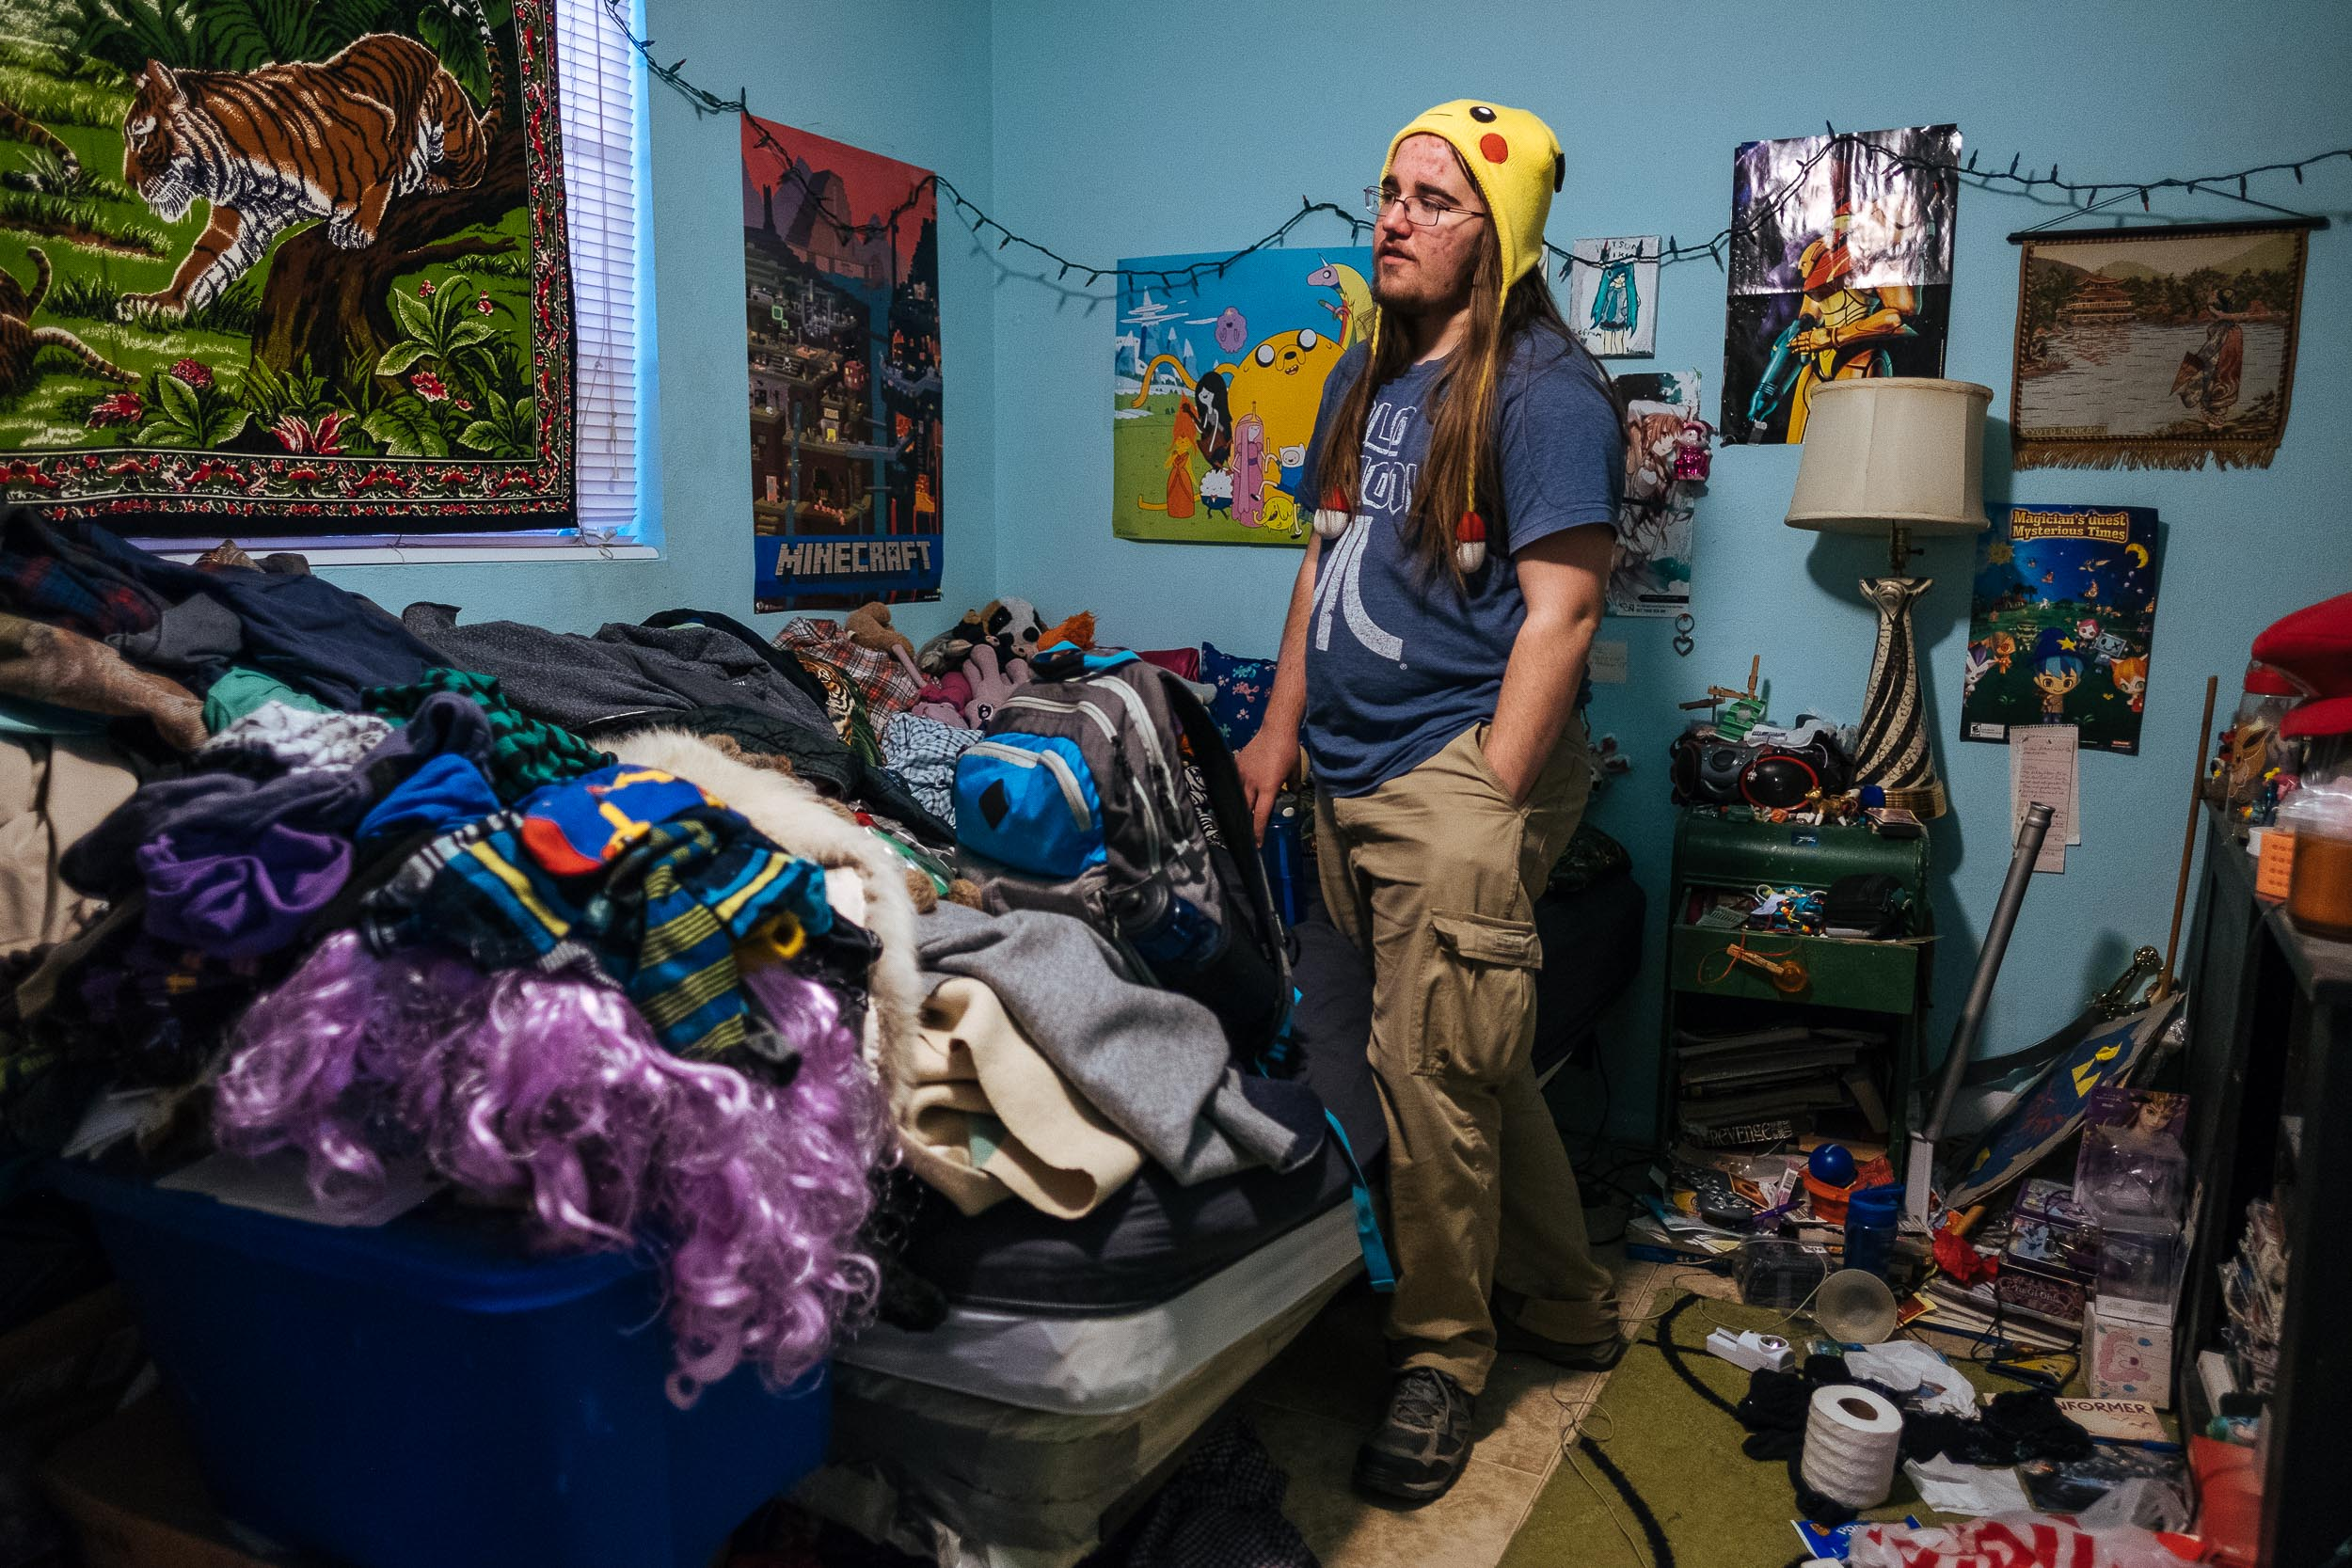 Jenny's son, Zefram, in his bedroom. Zefram is a senior in high school. Despite requiring some special attention scholastically and needing help with navigating change, Jenny describes Zefram as smart and funny.She says Zefram is a good person and that makes her a good mom.